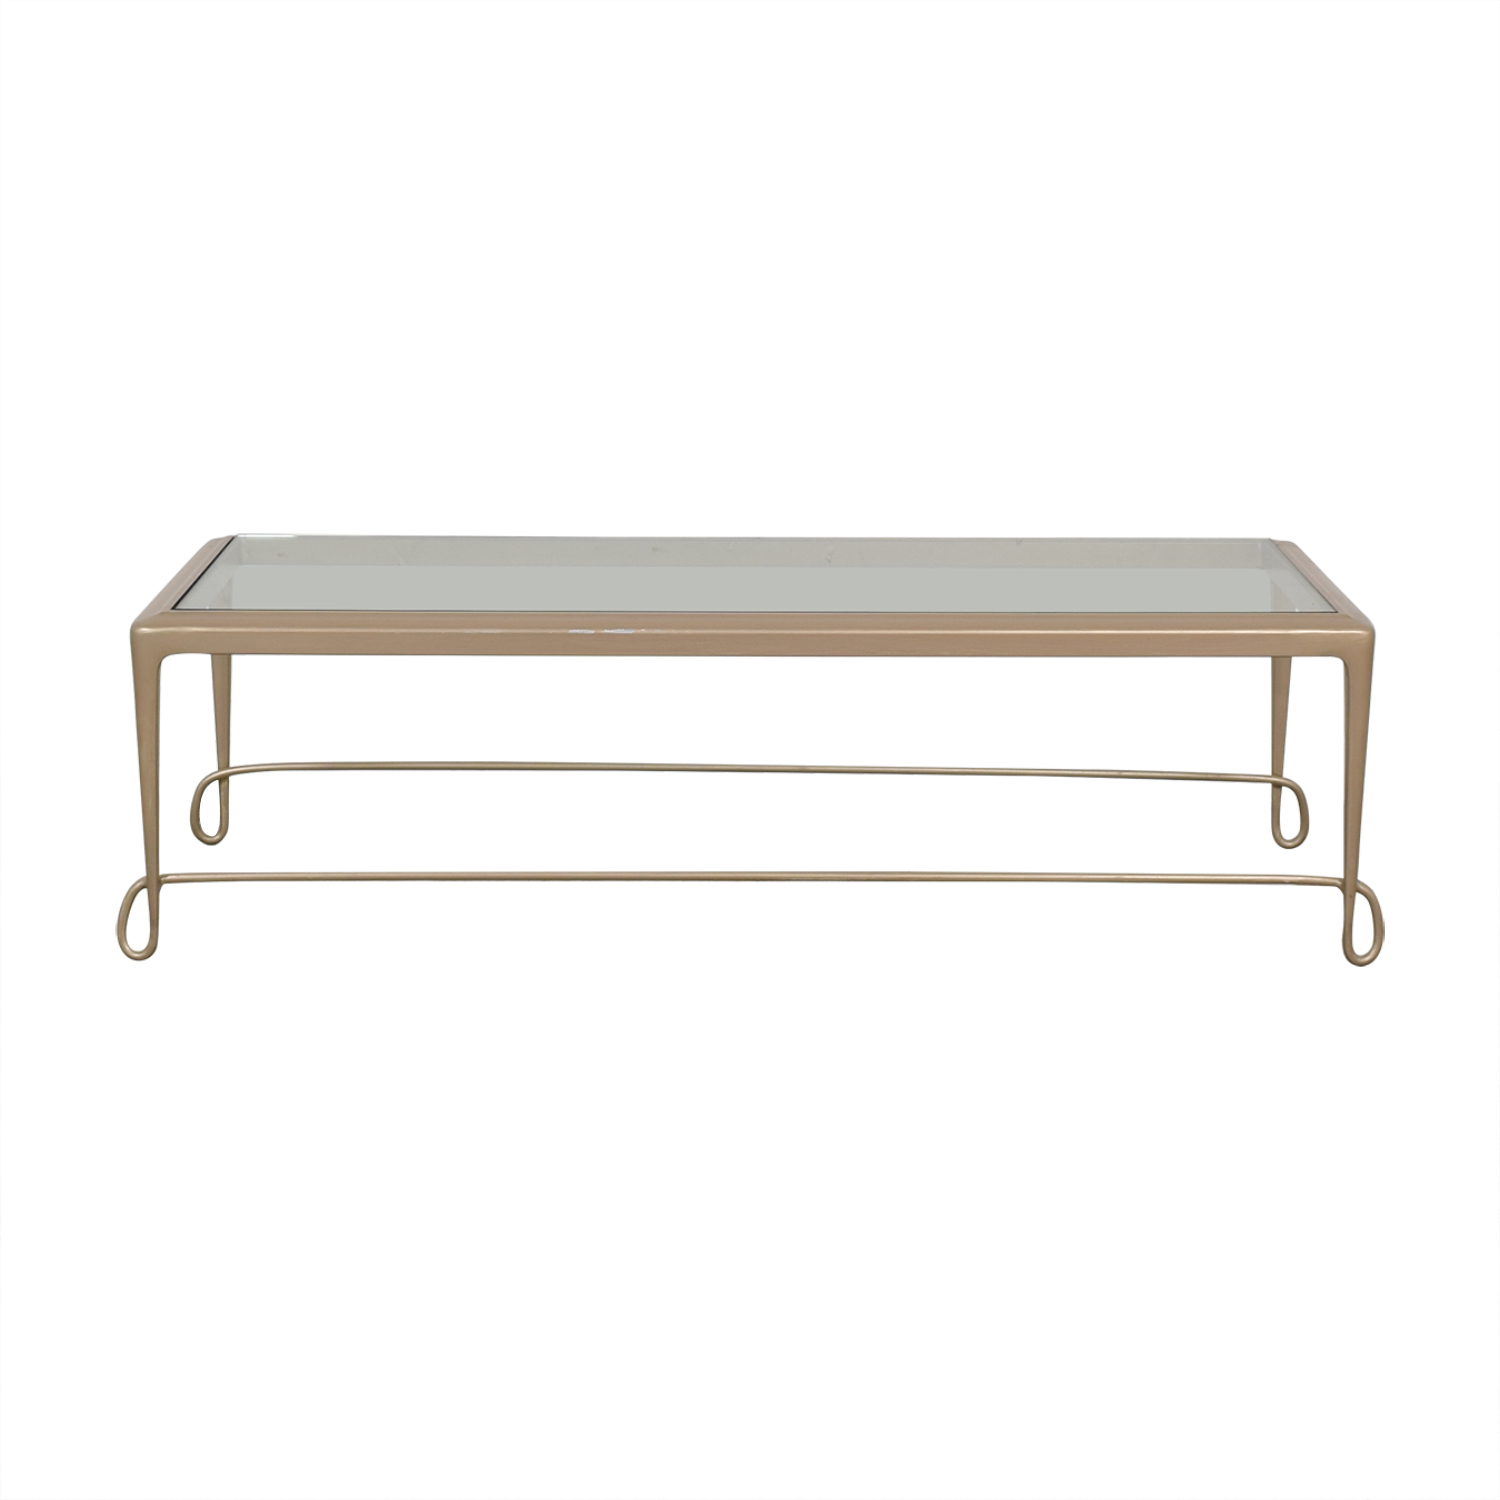 Barbara Barry Barbara Barry Glass Top Coffee Table for sale